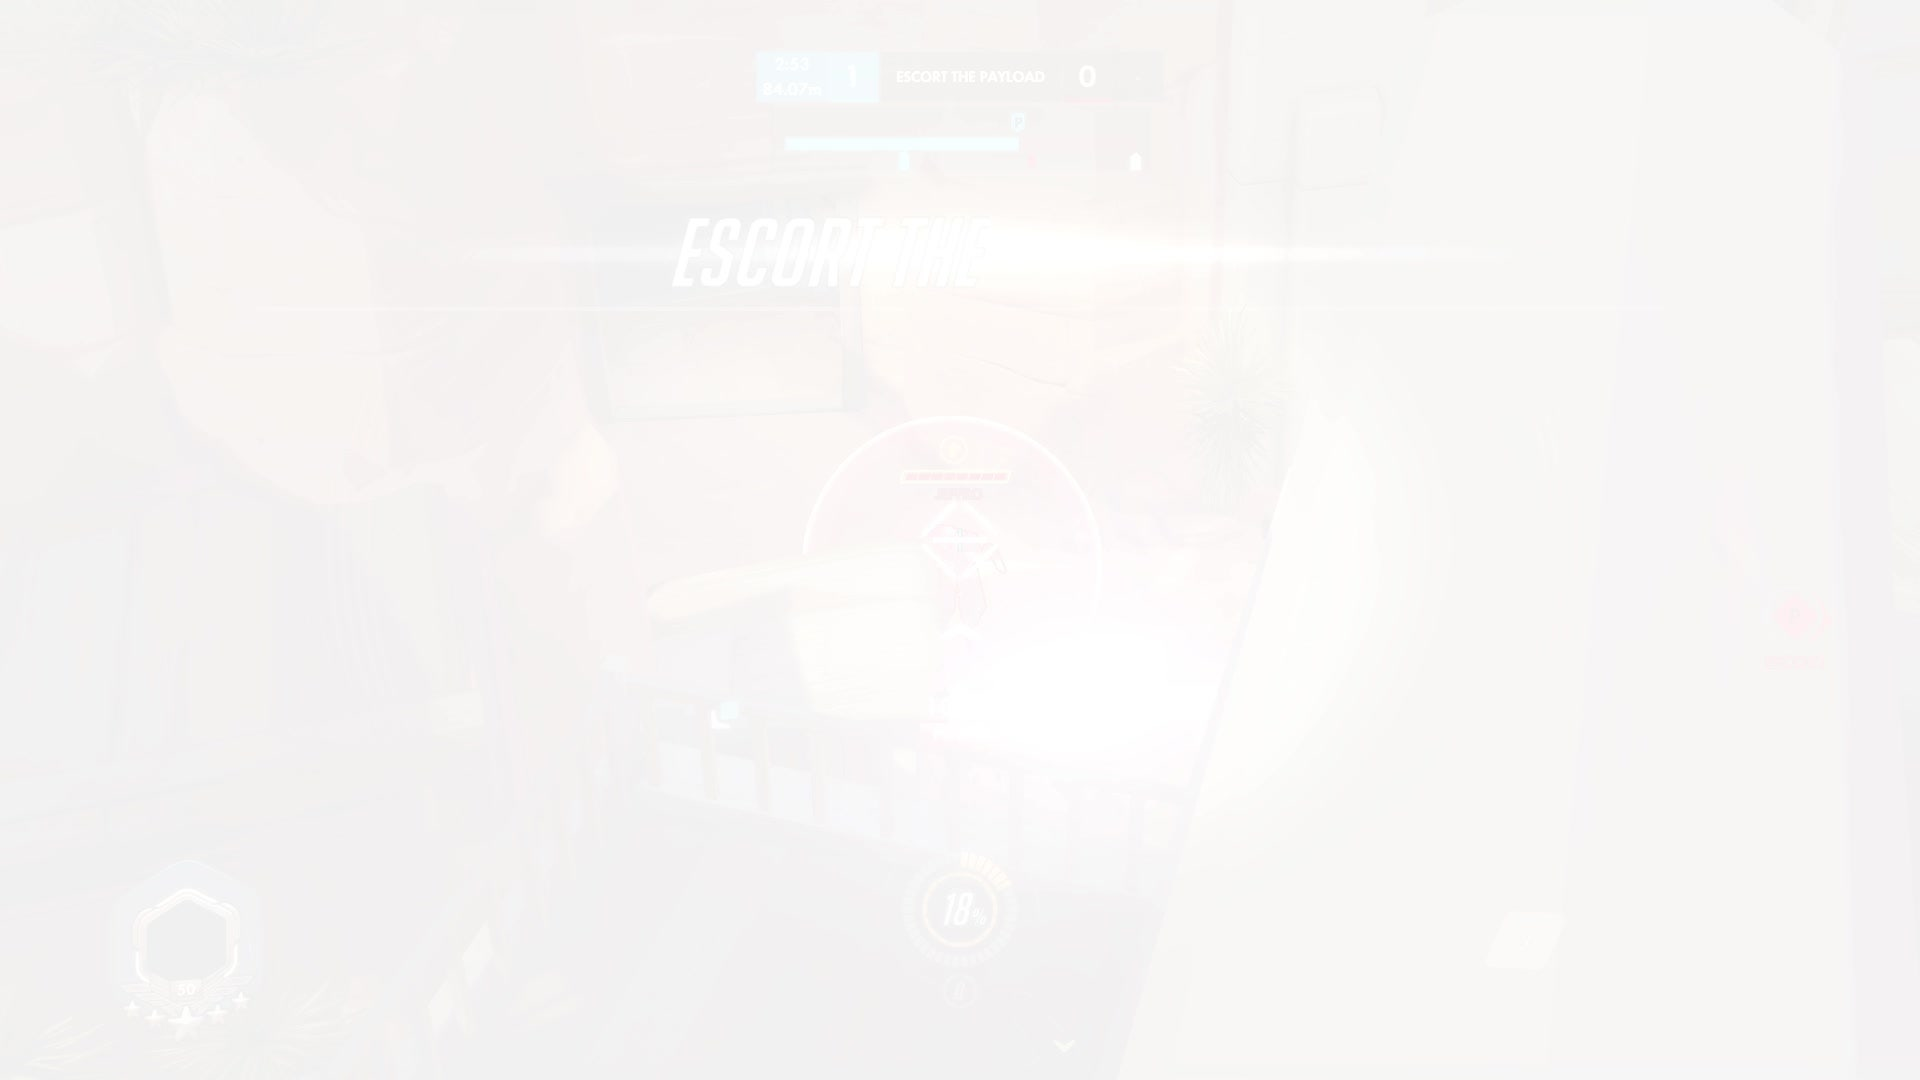 Overwatch: General - Widow in mid diamond video cover image 0